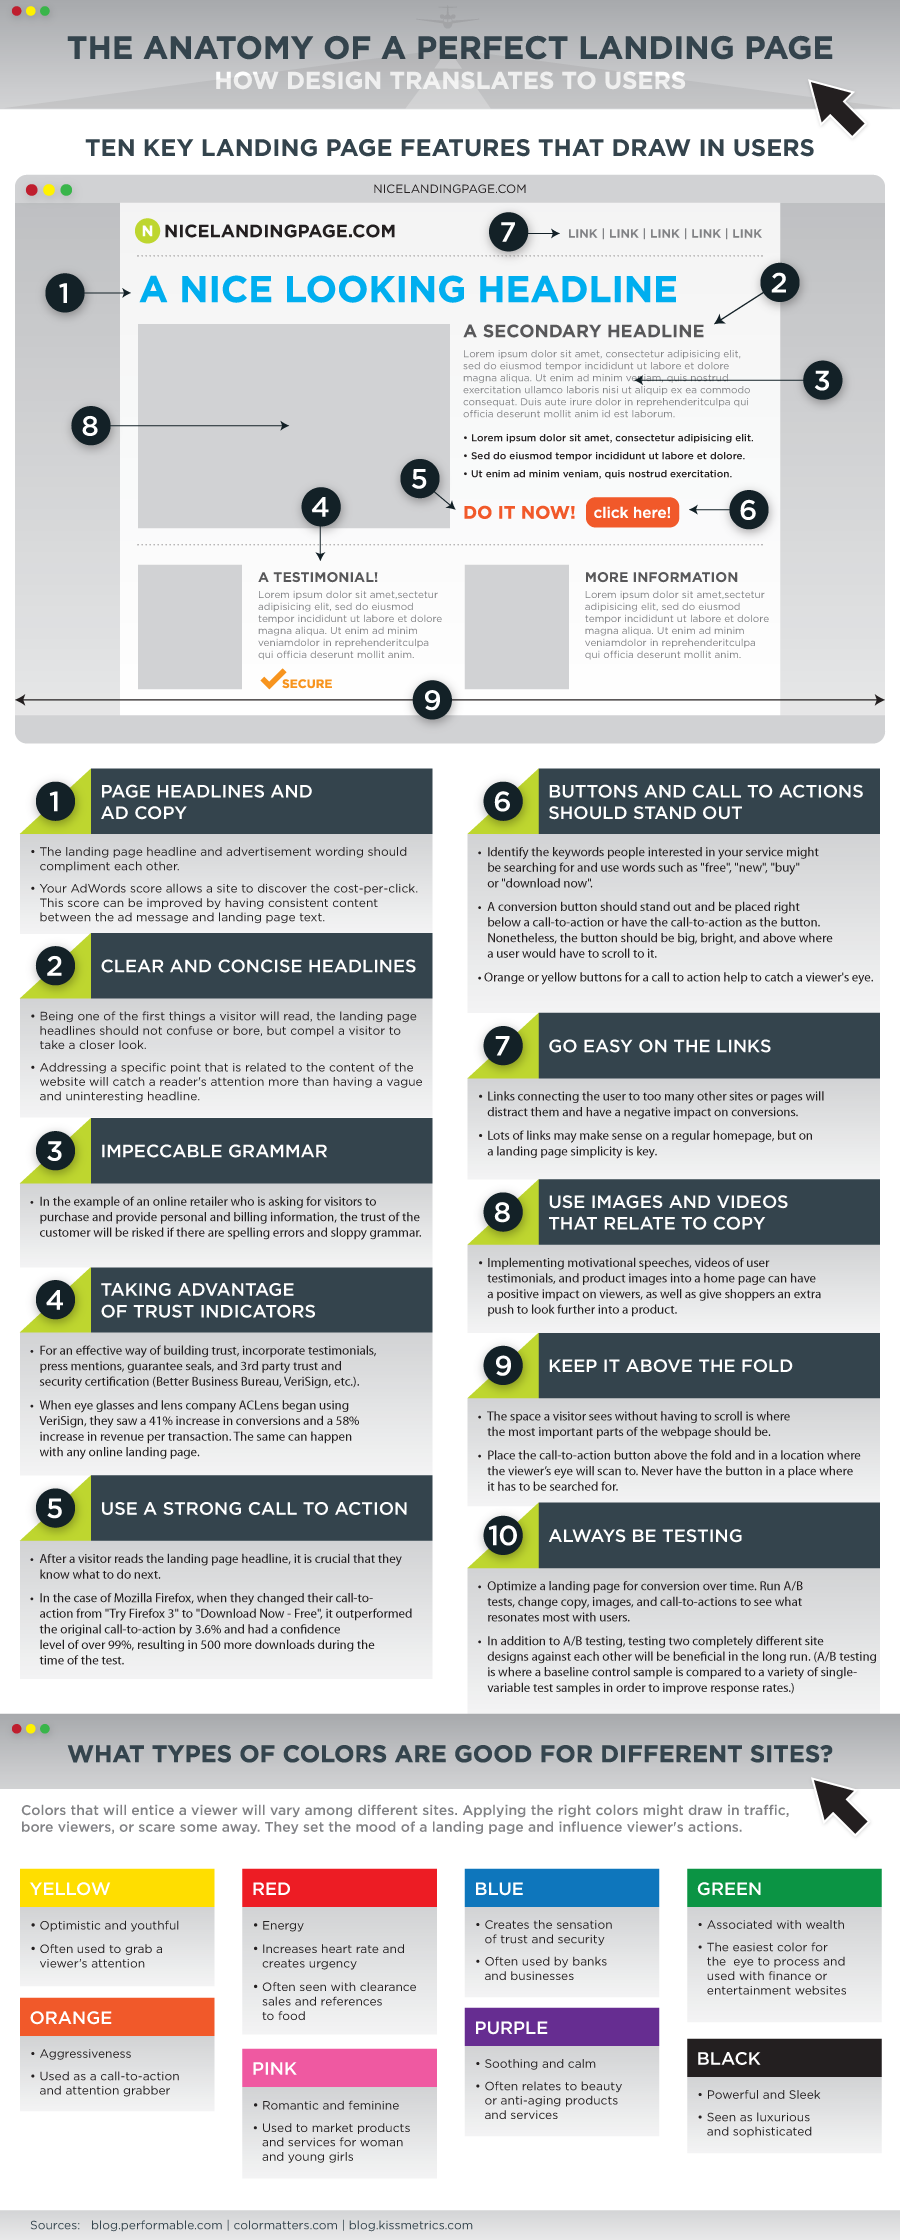 Not sure how to make your landing page perfect? Here are a few tips that will get you set on the right track!